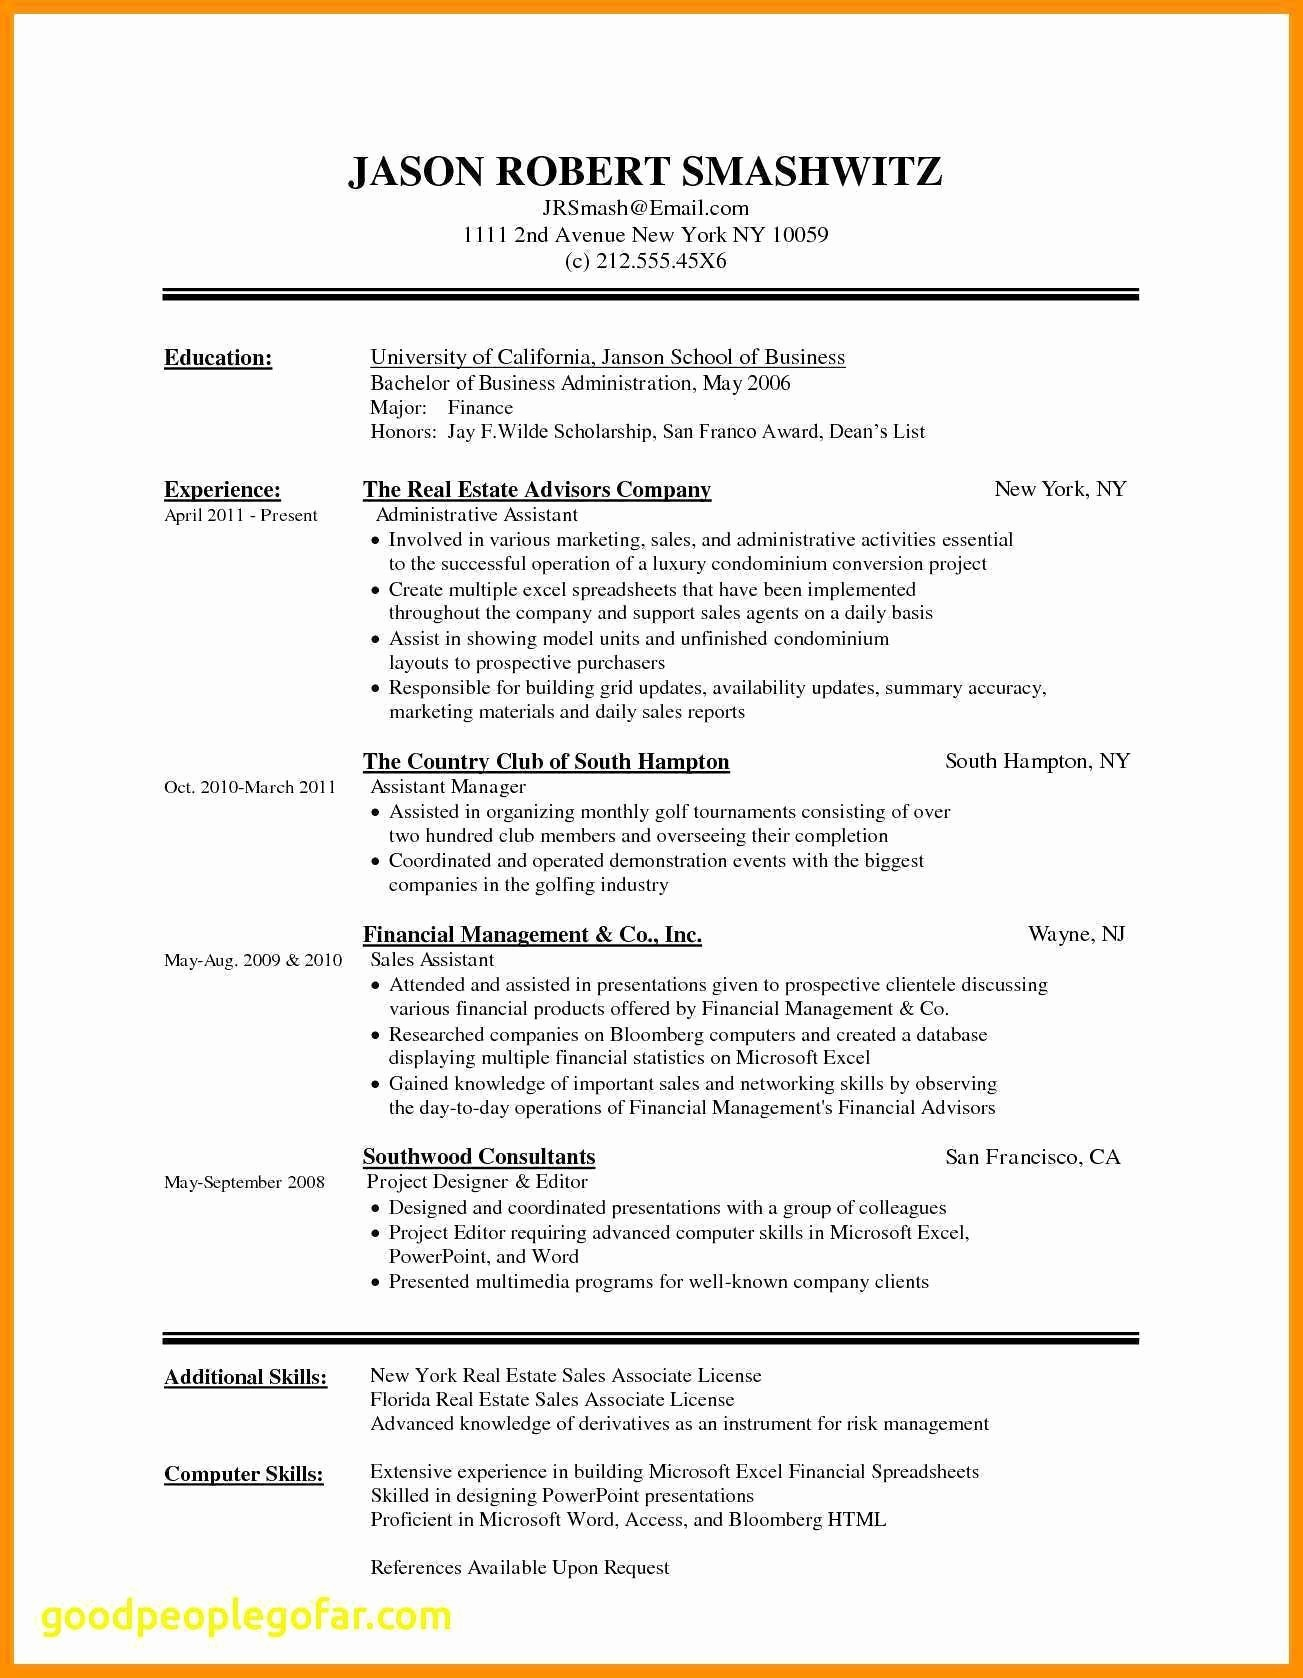 Resume Building Words - Free Resume Template Download Lovely Cfo Resume New Template Writing